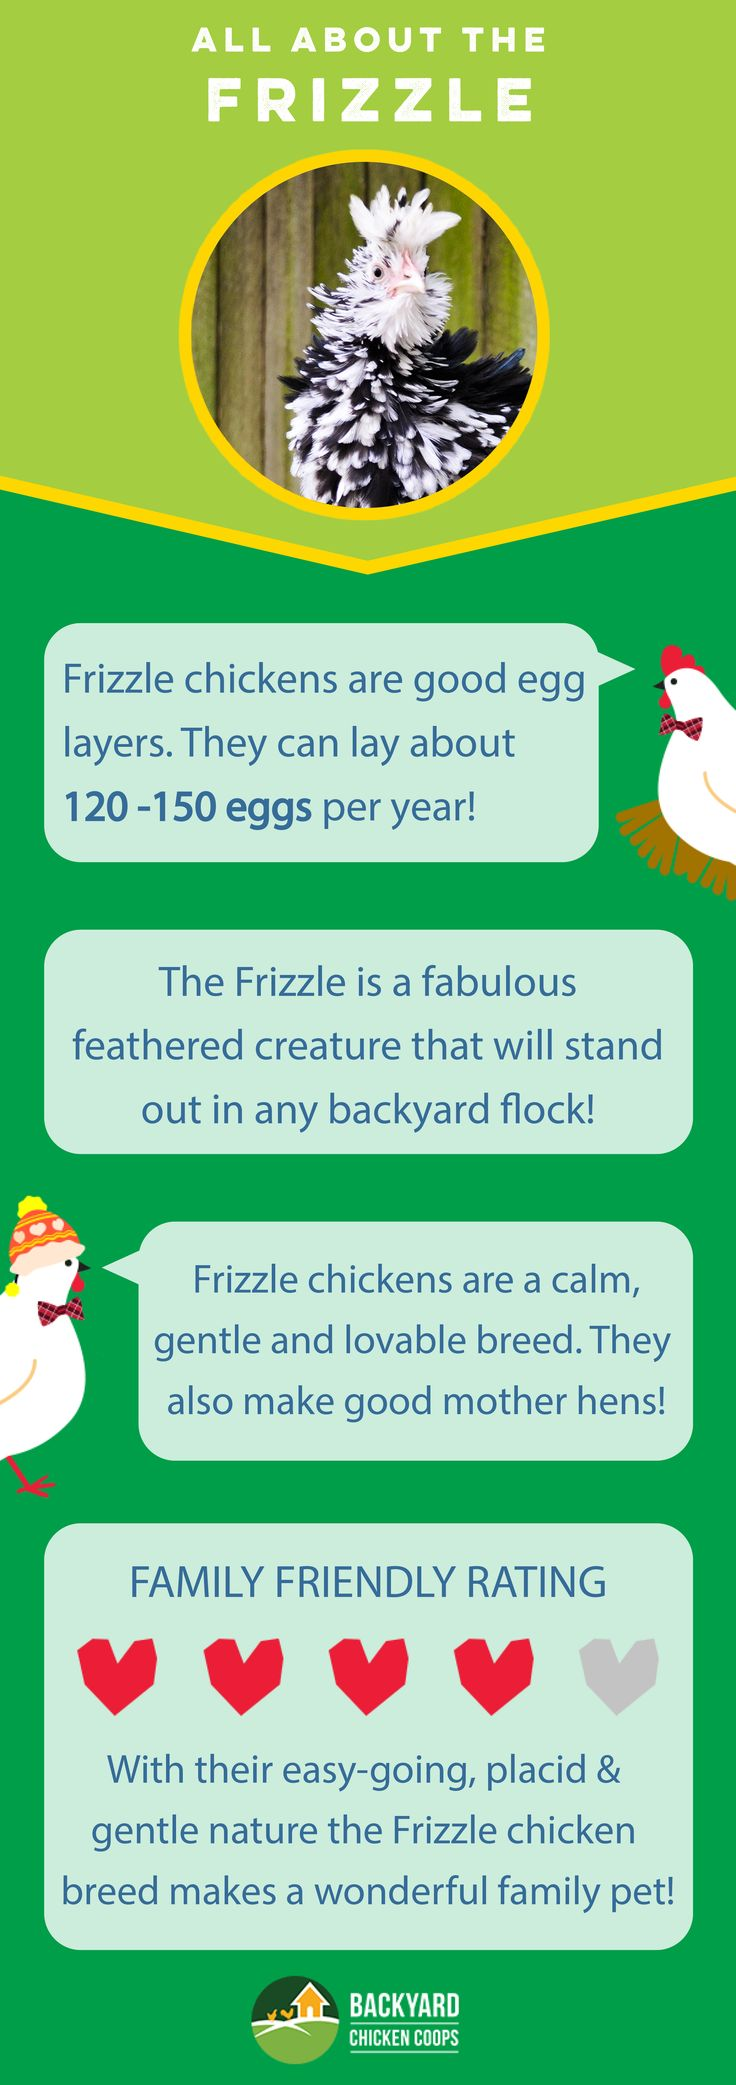 The Frizzle chicken is an all round brilliant breed. They make wonderful pets, produce a reliable amount of eggs and make a delightful addition to any backyard flock! Check out their breed profile here, http://www.backyardchickencoops.com.au/breed-profile-frizzle/ #loveyourchickens #infographic #frizzlechickens